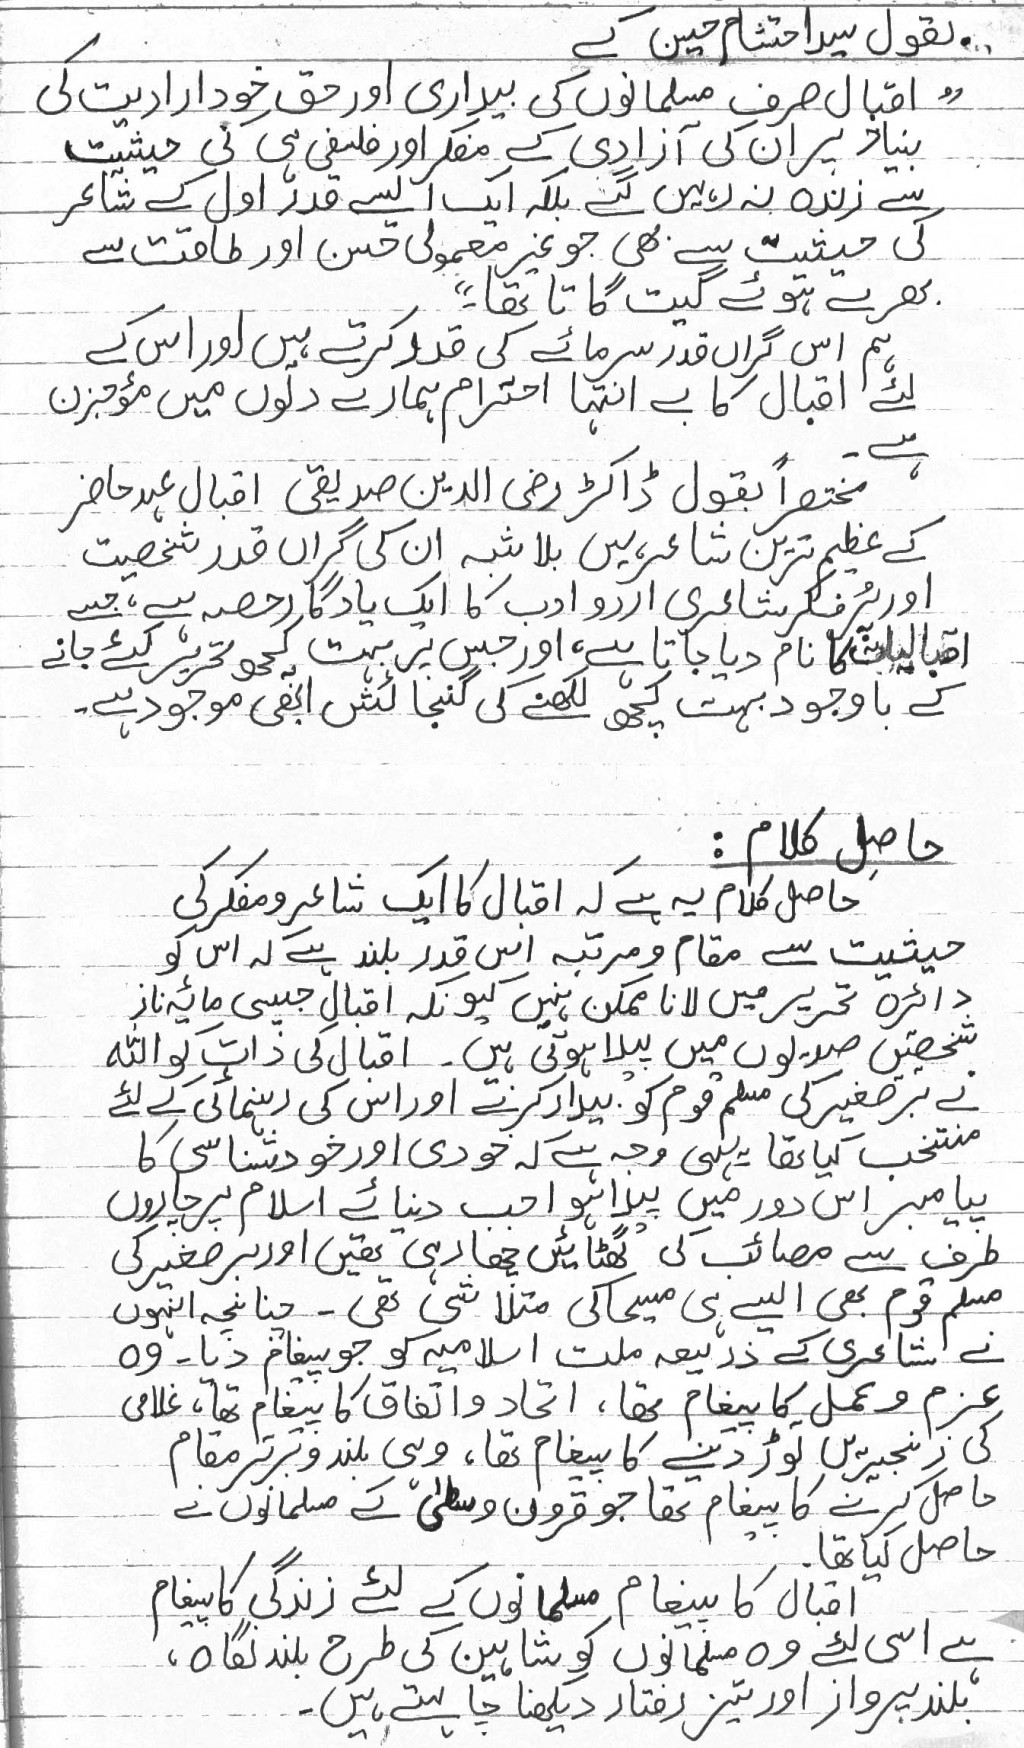 003 Jpg Urdu Essay Allama Iqbal Dreaded On In For Class 10 With Poetry Ka Shaheen Headings And Large